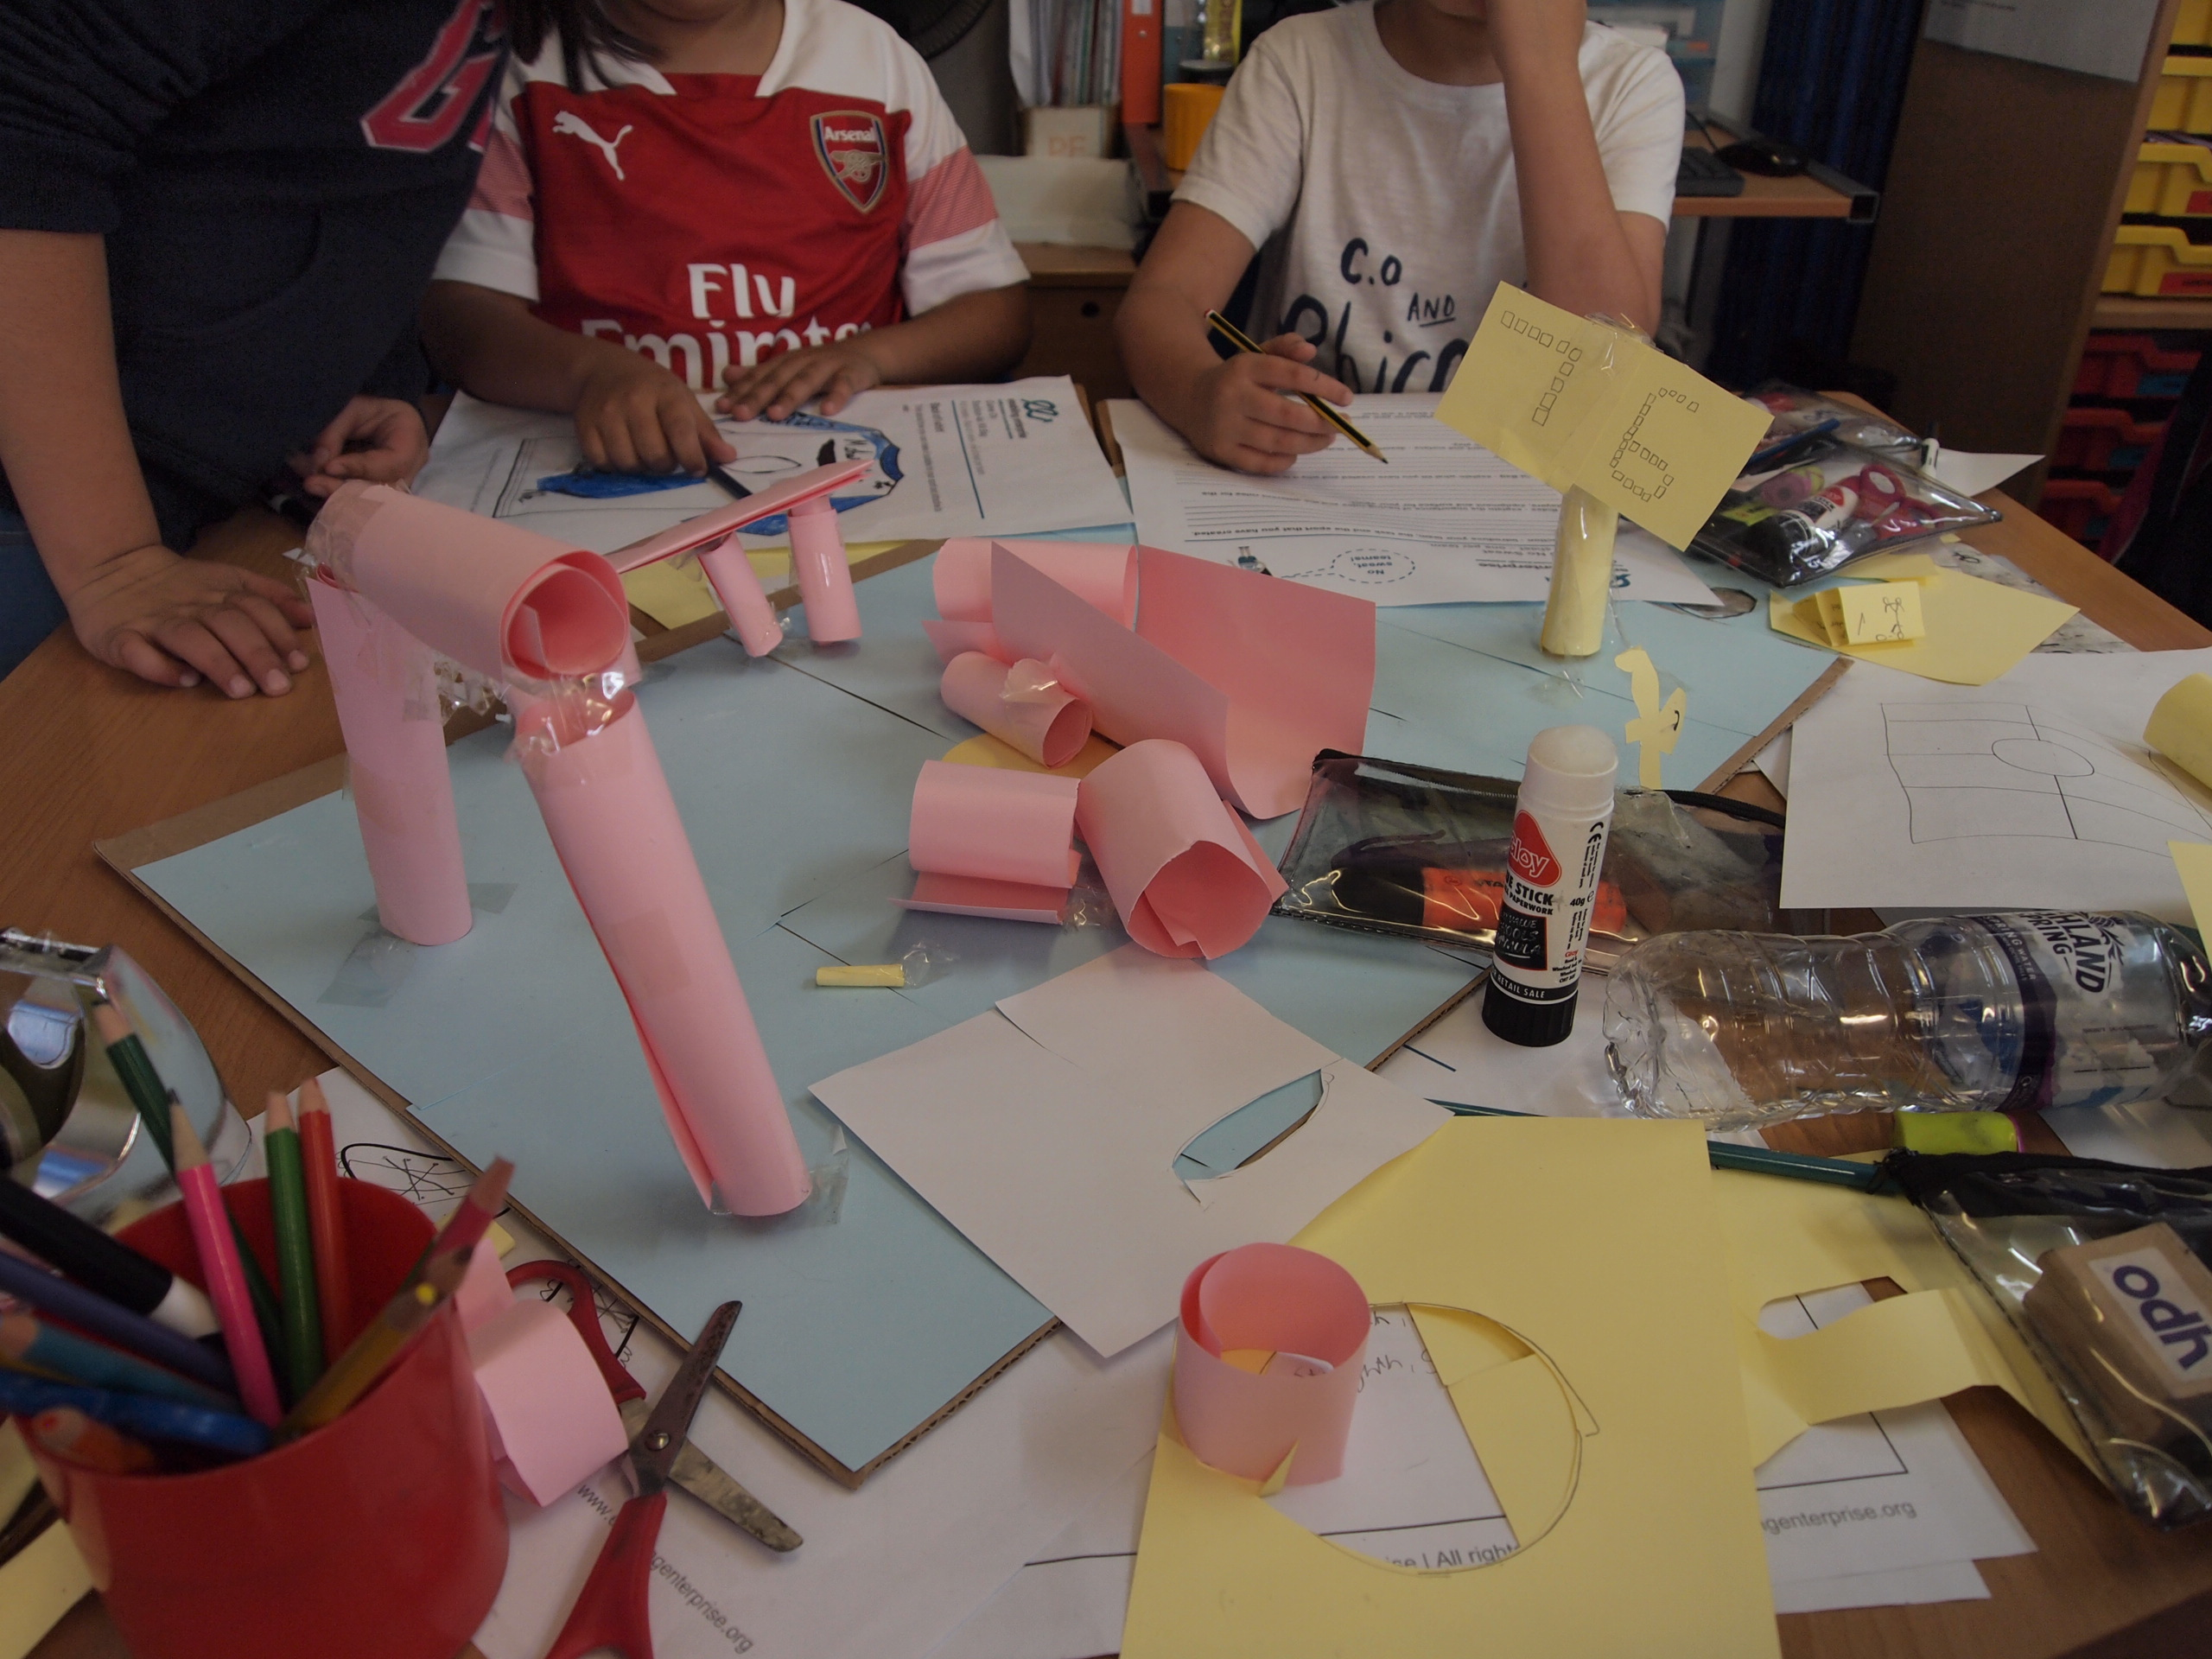 Year 5 teams putting their finishing touches on a 3D model of a brand new type of pitch before Presenting to the class